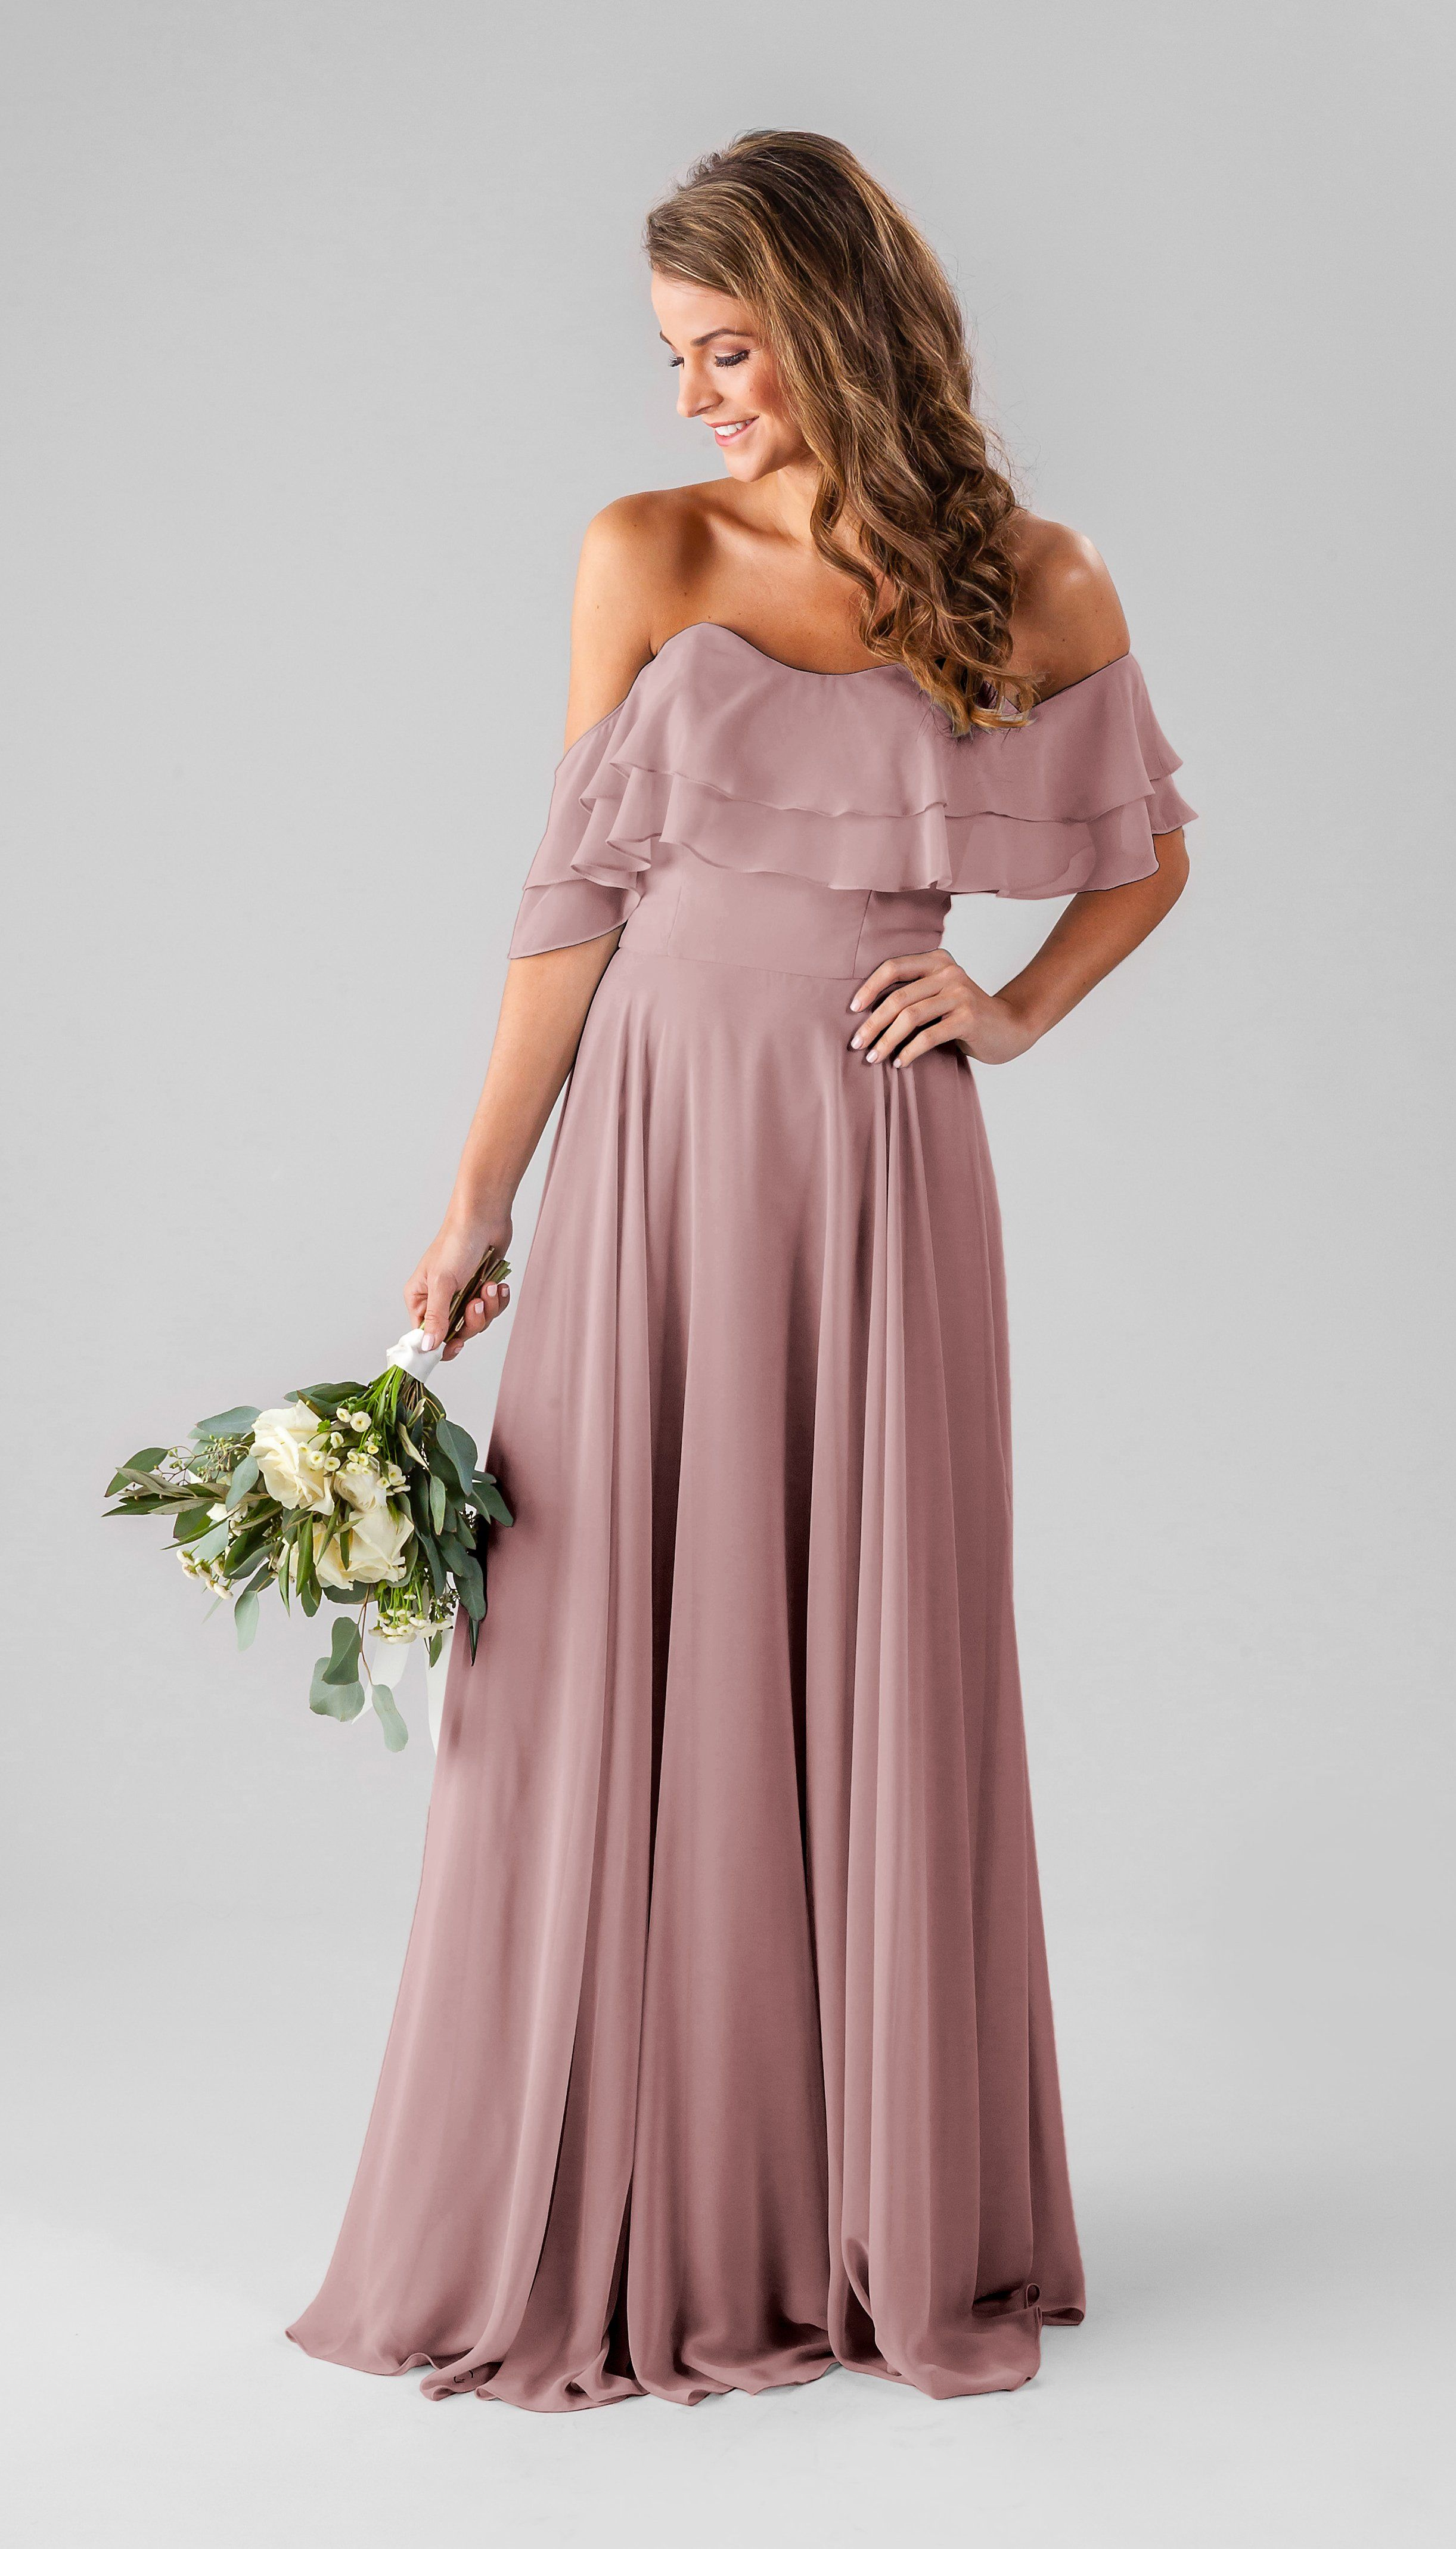 9fdfbc4ace7 Boho bridesmaid dresses